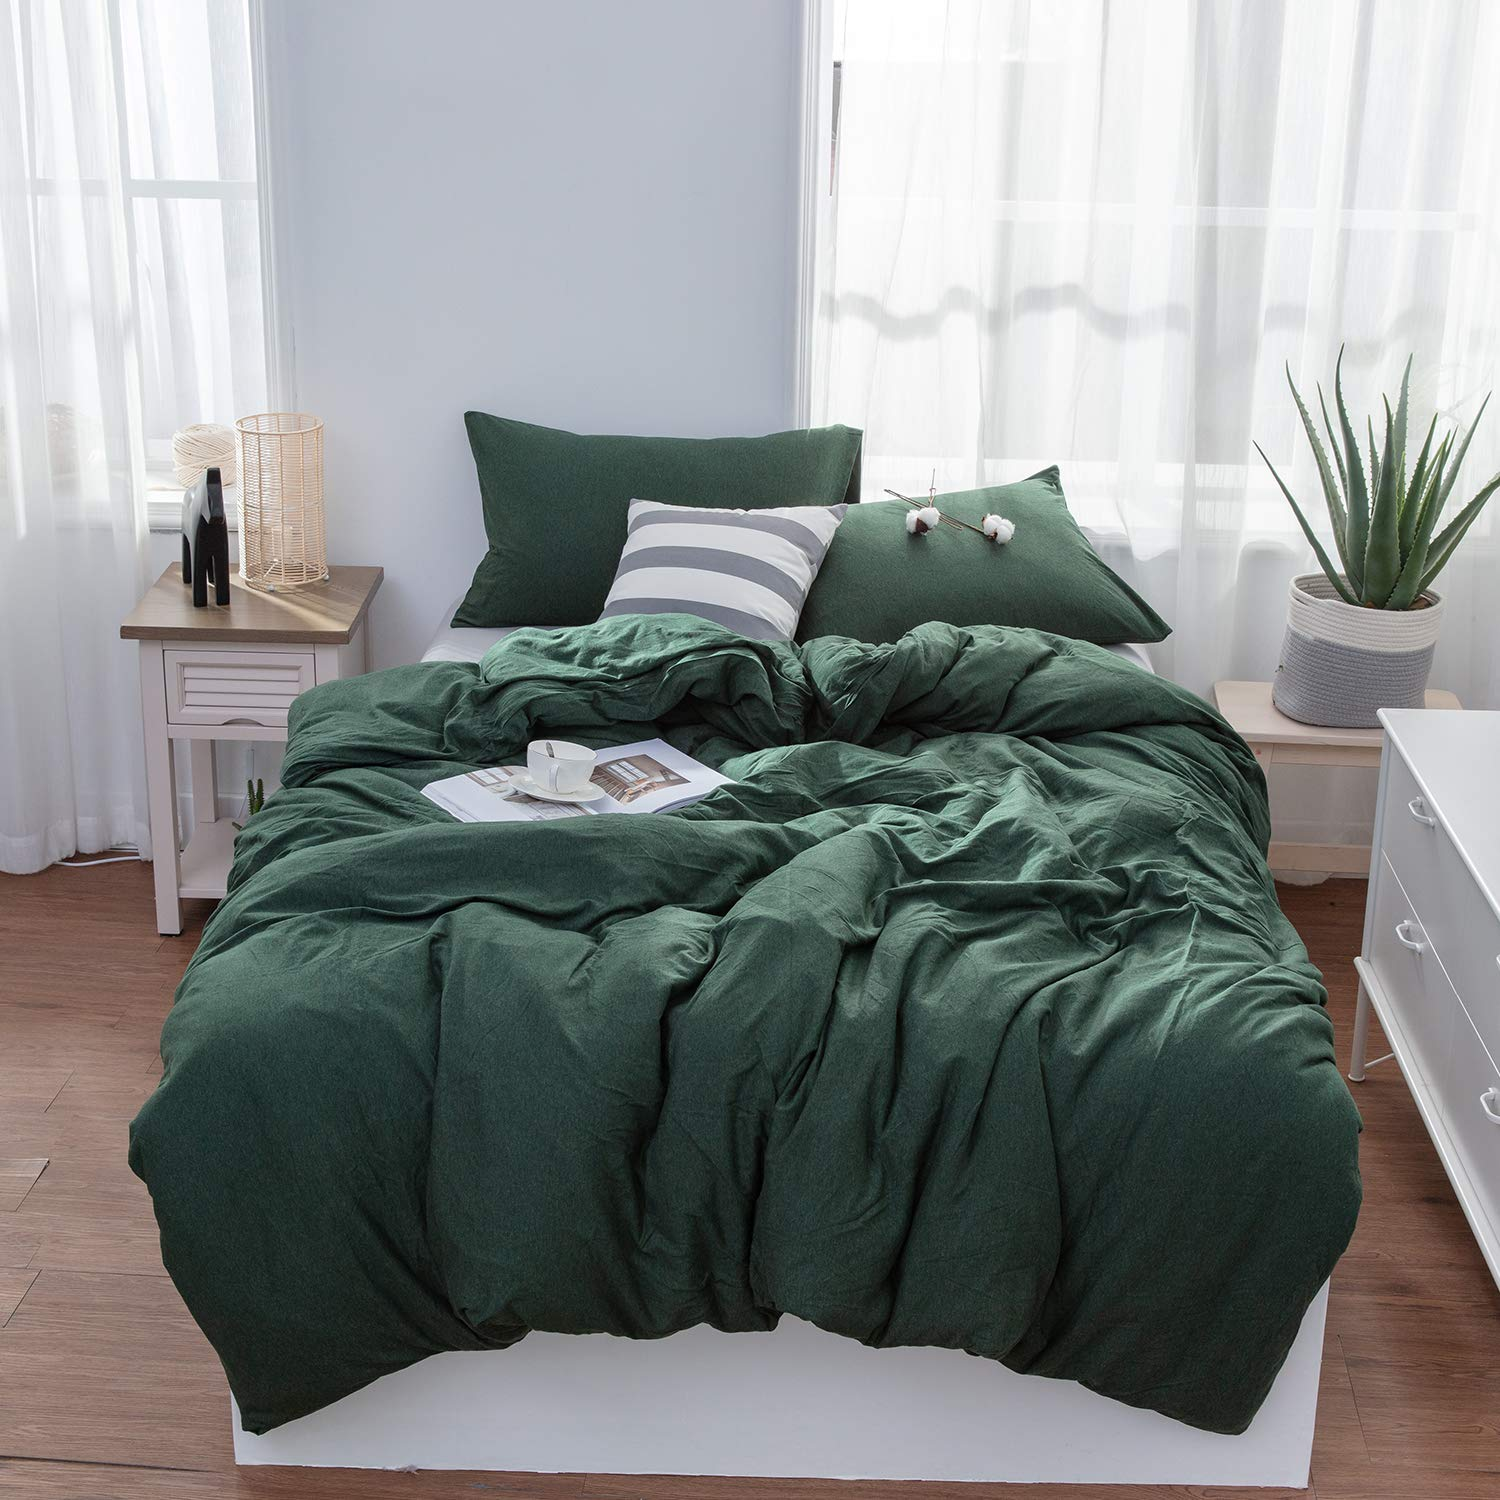 LIFETOWN Jersey Knit Cotton Duvet Cover Set Twin, Twin XL Dark Green Bedding Set 3 Pieces (1 Duvet Cover + 2 Pillow Cases), Simple Solid Design, Super Soft and Easy Care